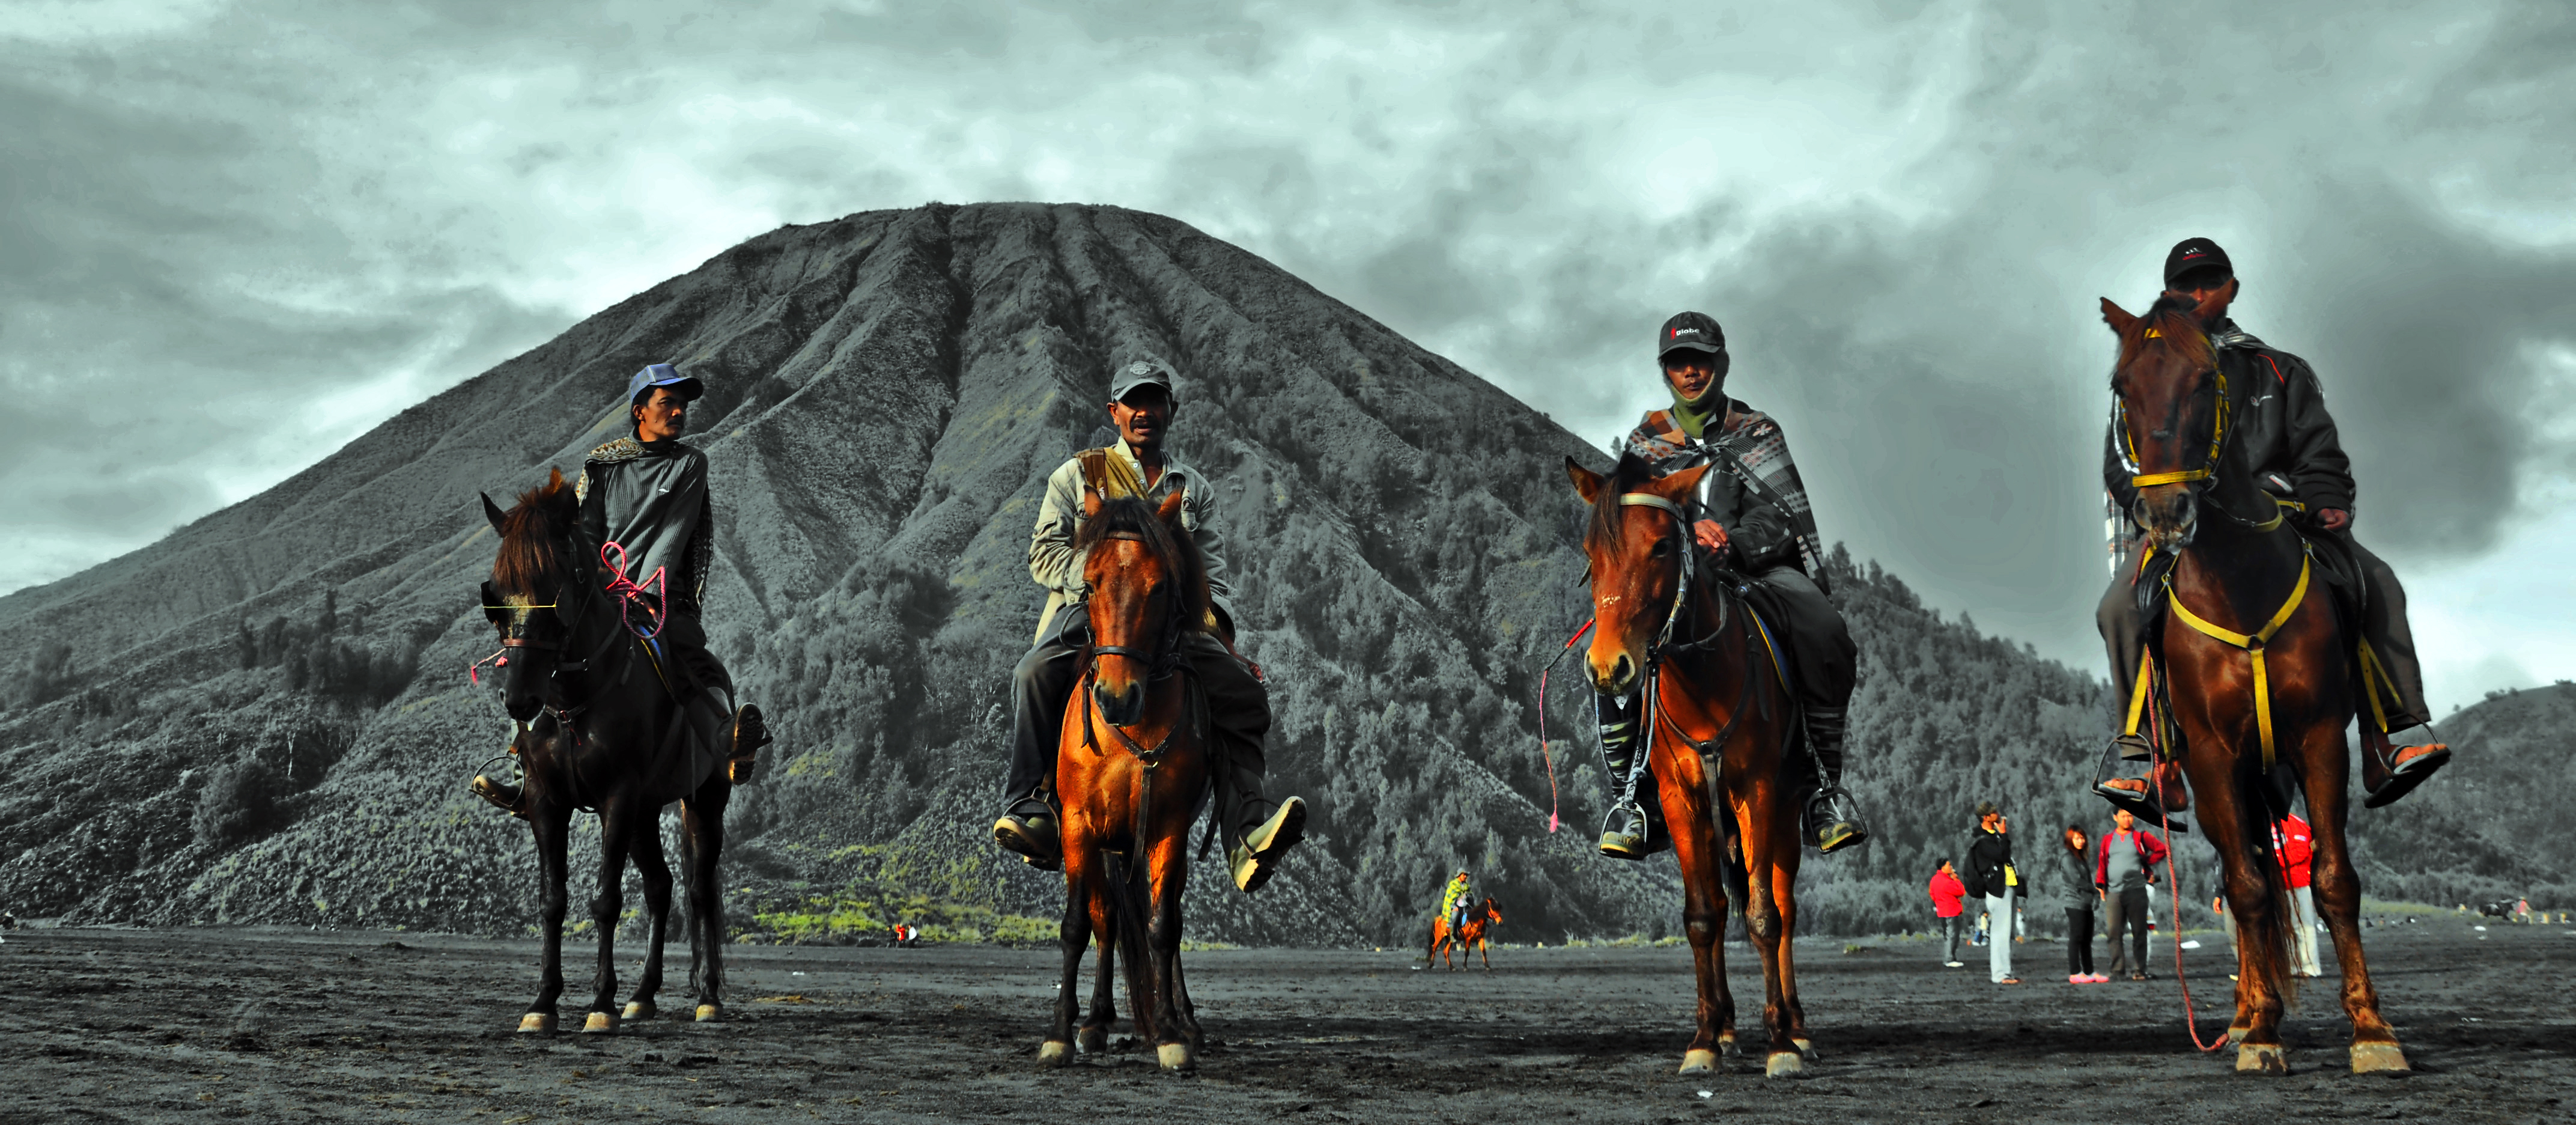 Horse riders at Mount Bromo, East Java, posing in front of Mount Batok